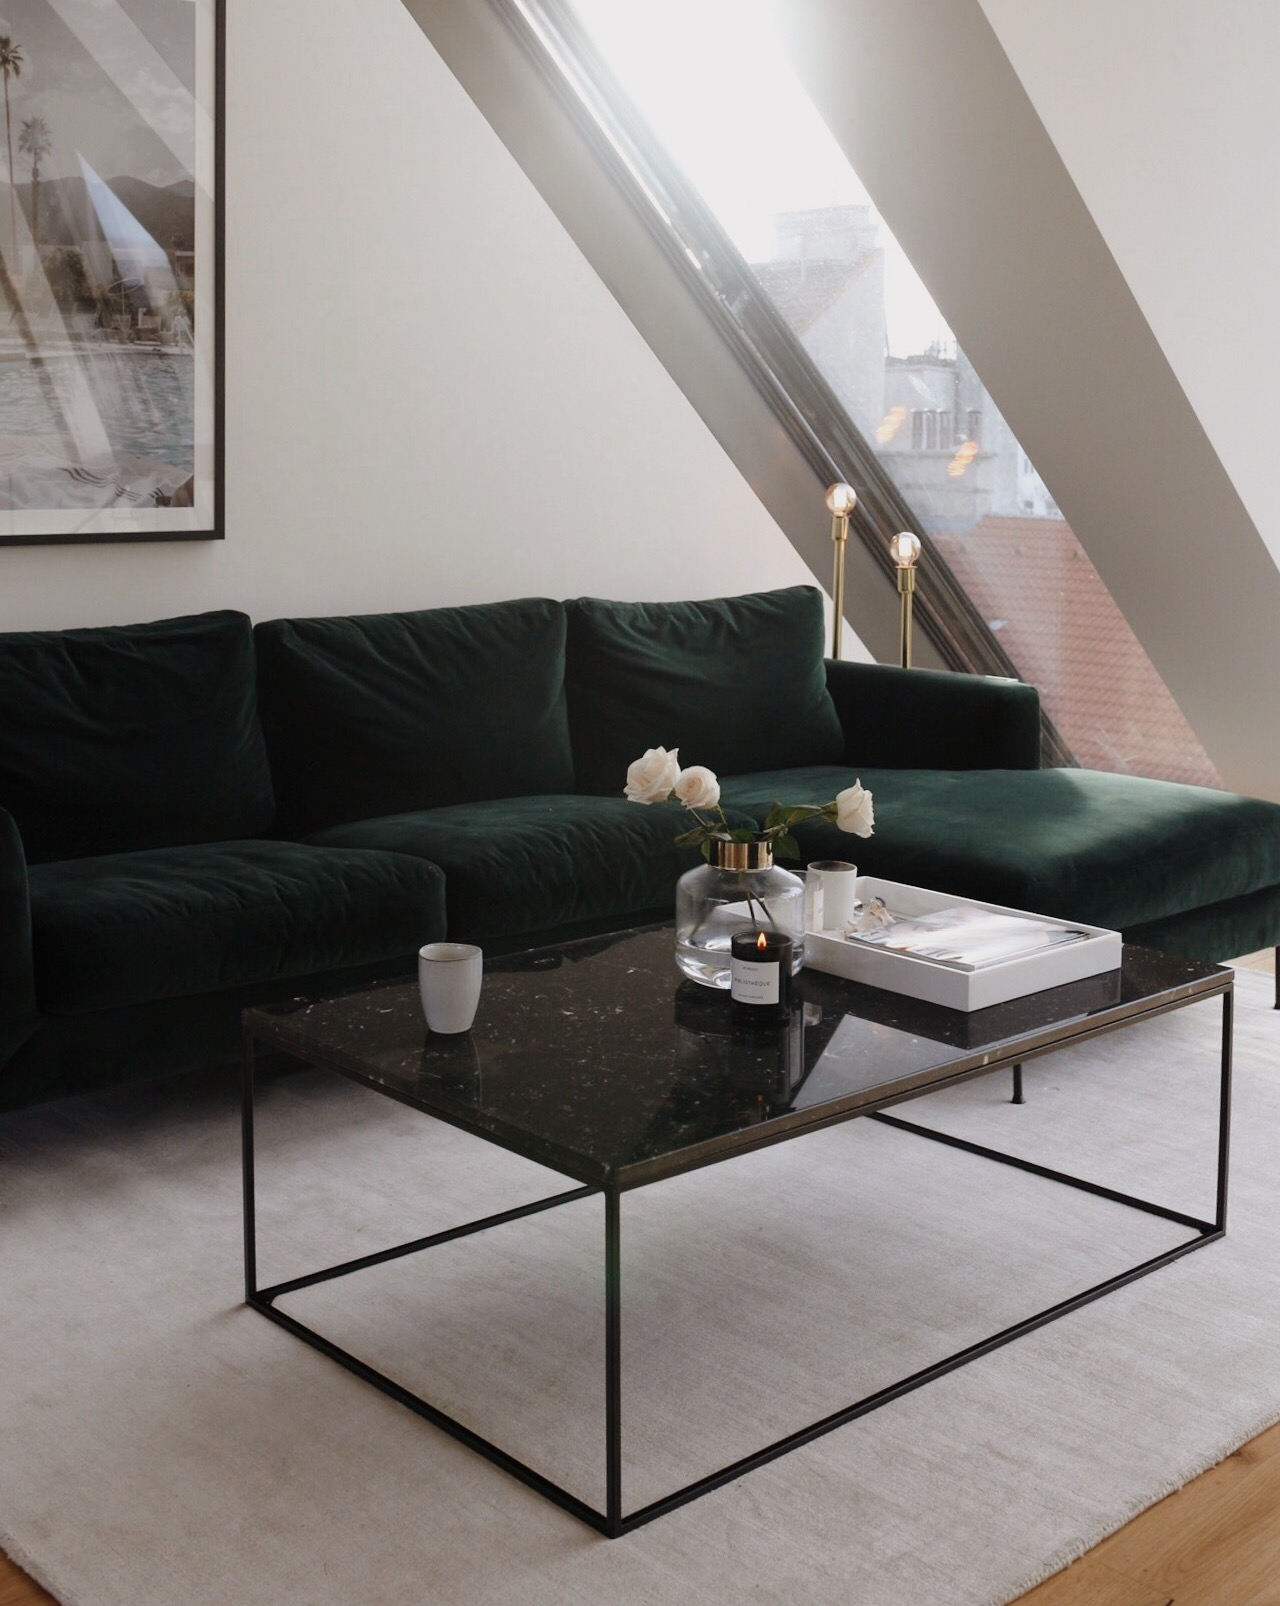 Sofa Trends 2019: Samtsofas - Love Daily Dose